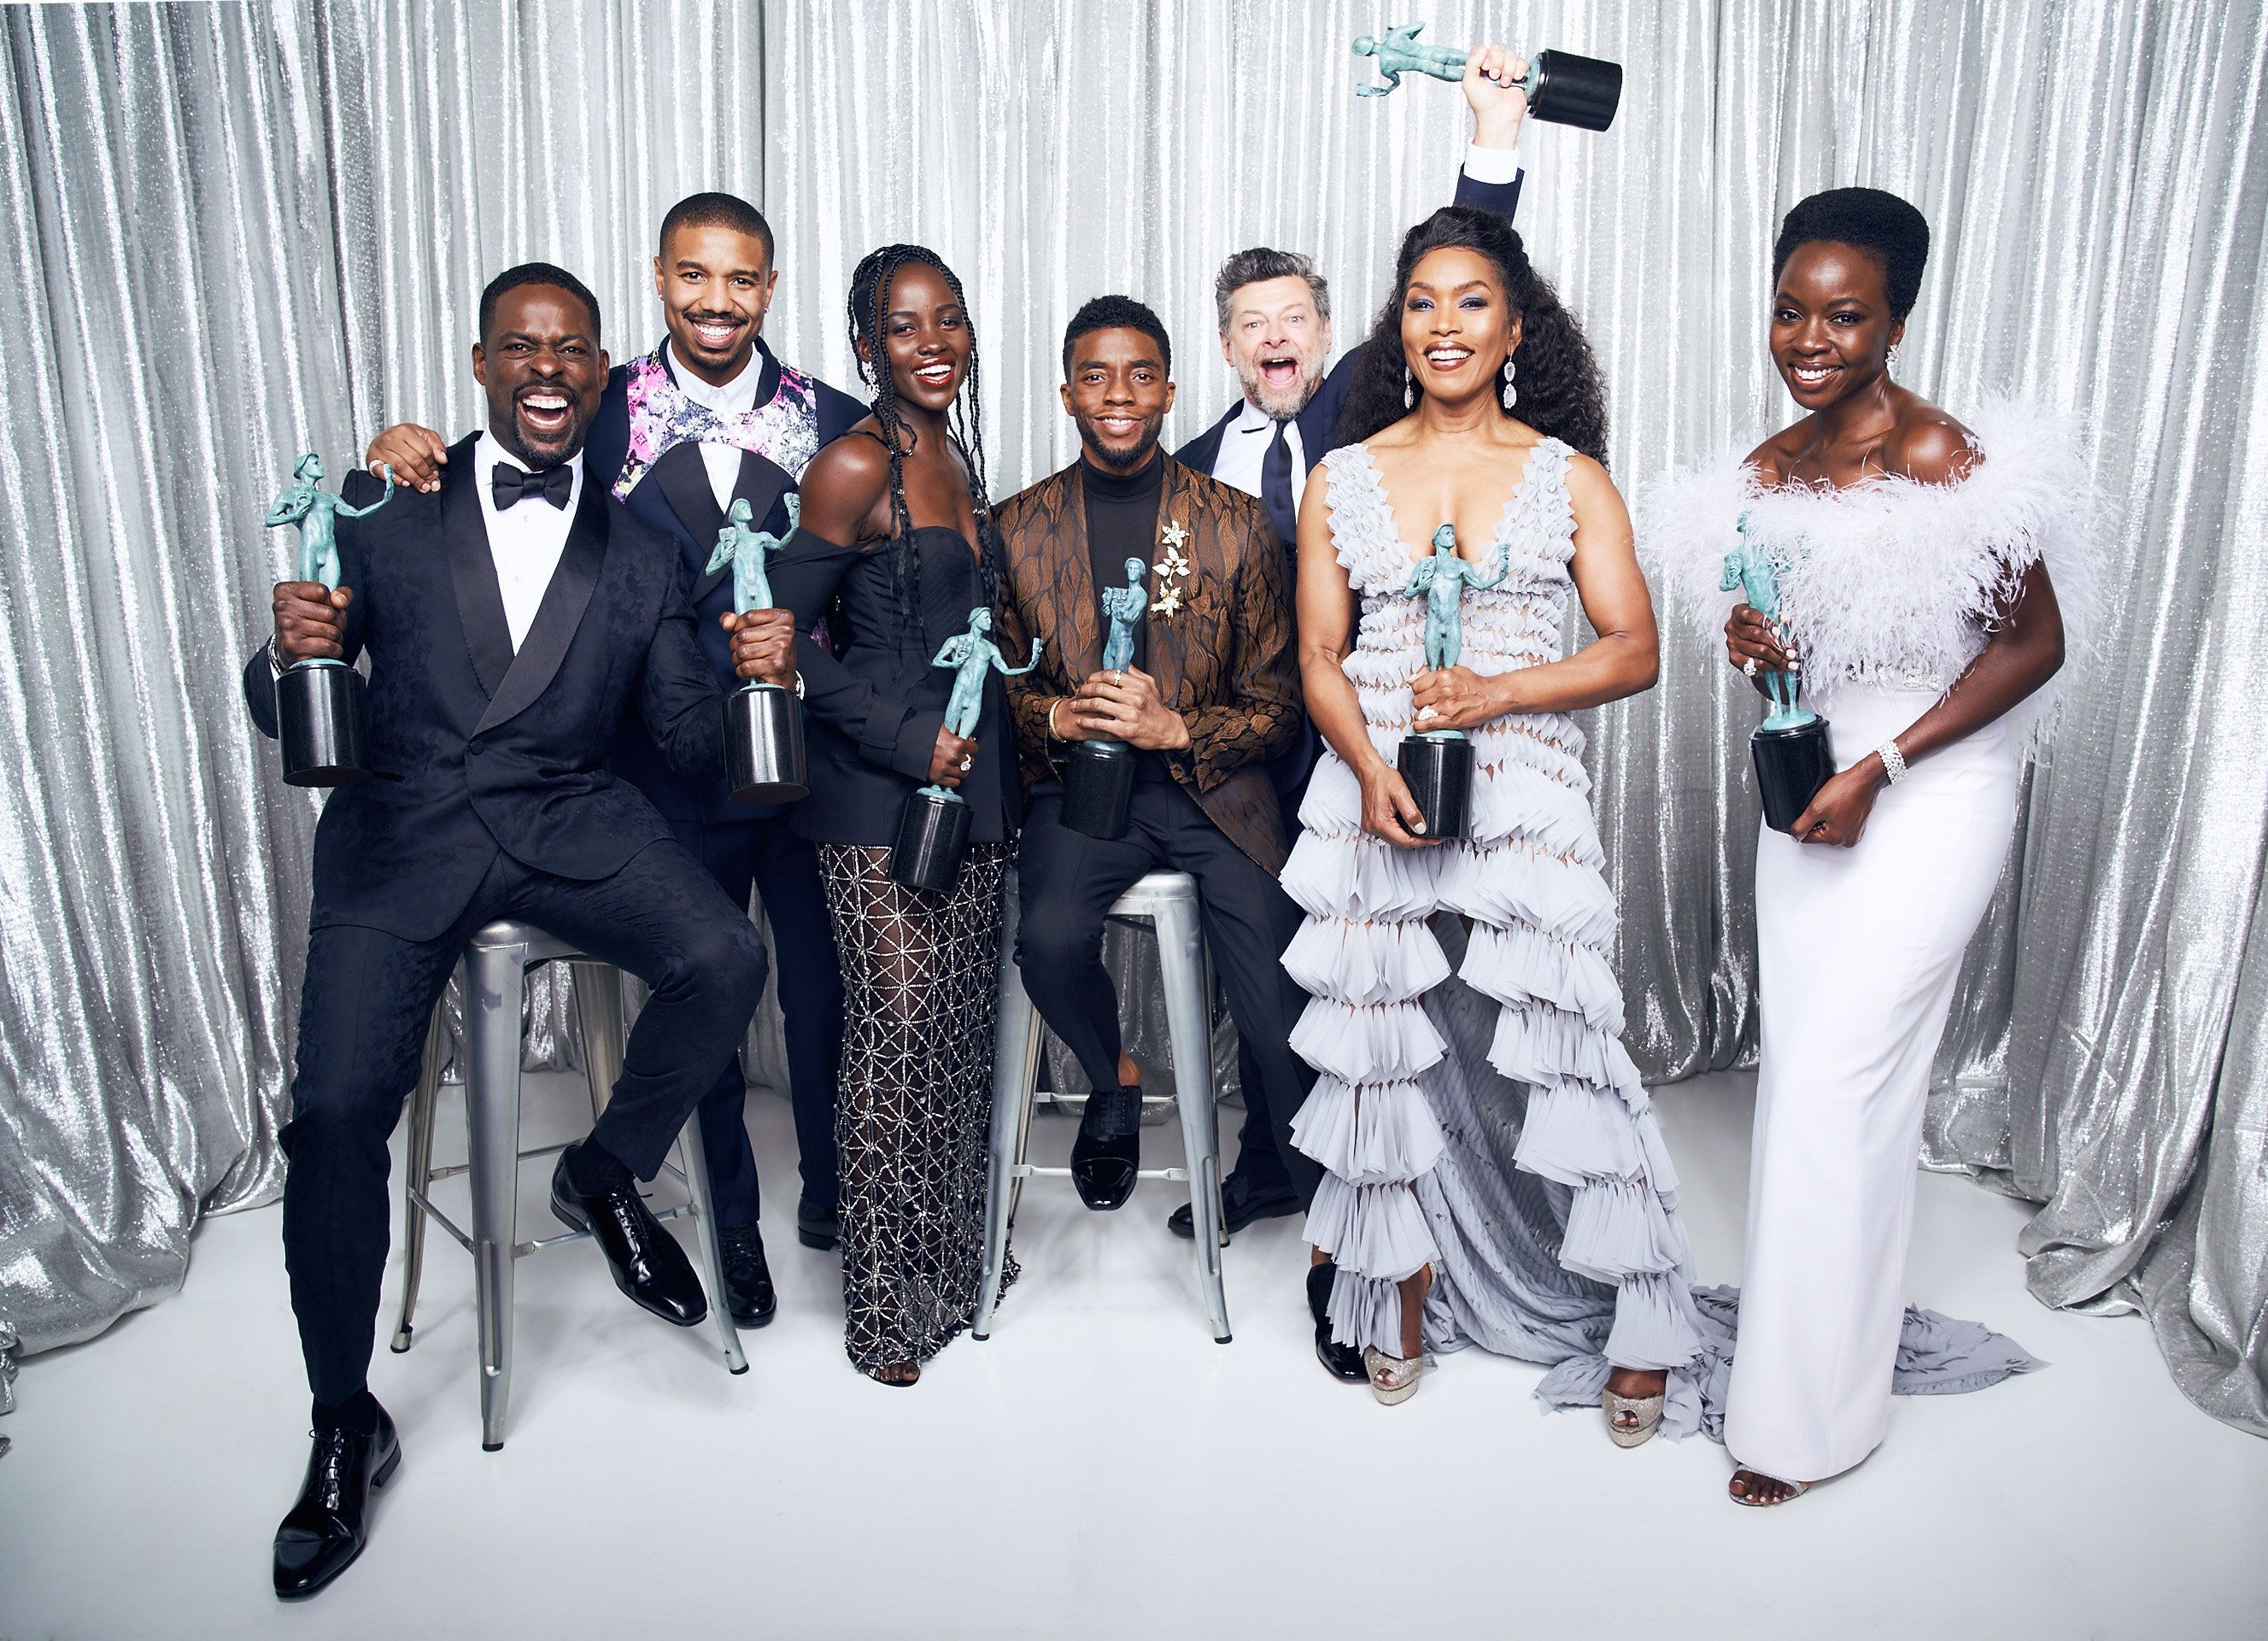 'Black Panther' Makes SAG Awards History, Prompting Poignant Acceptance